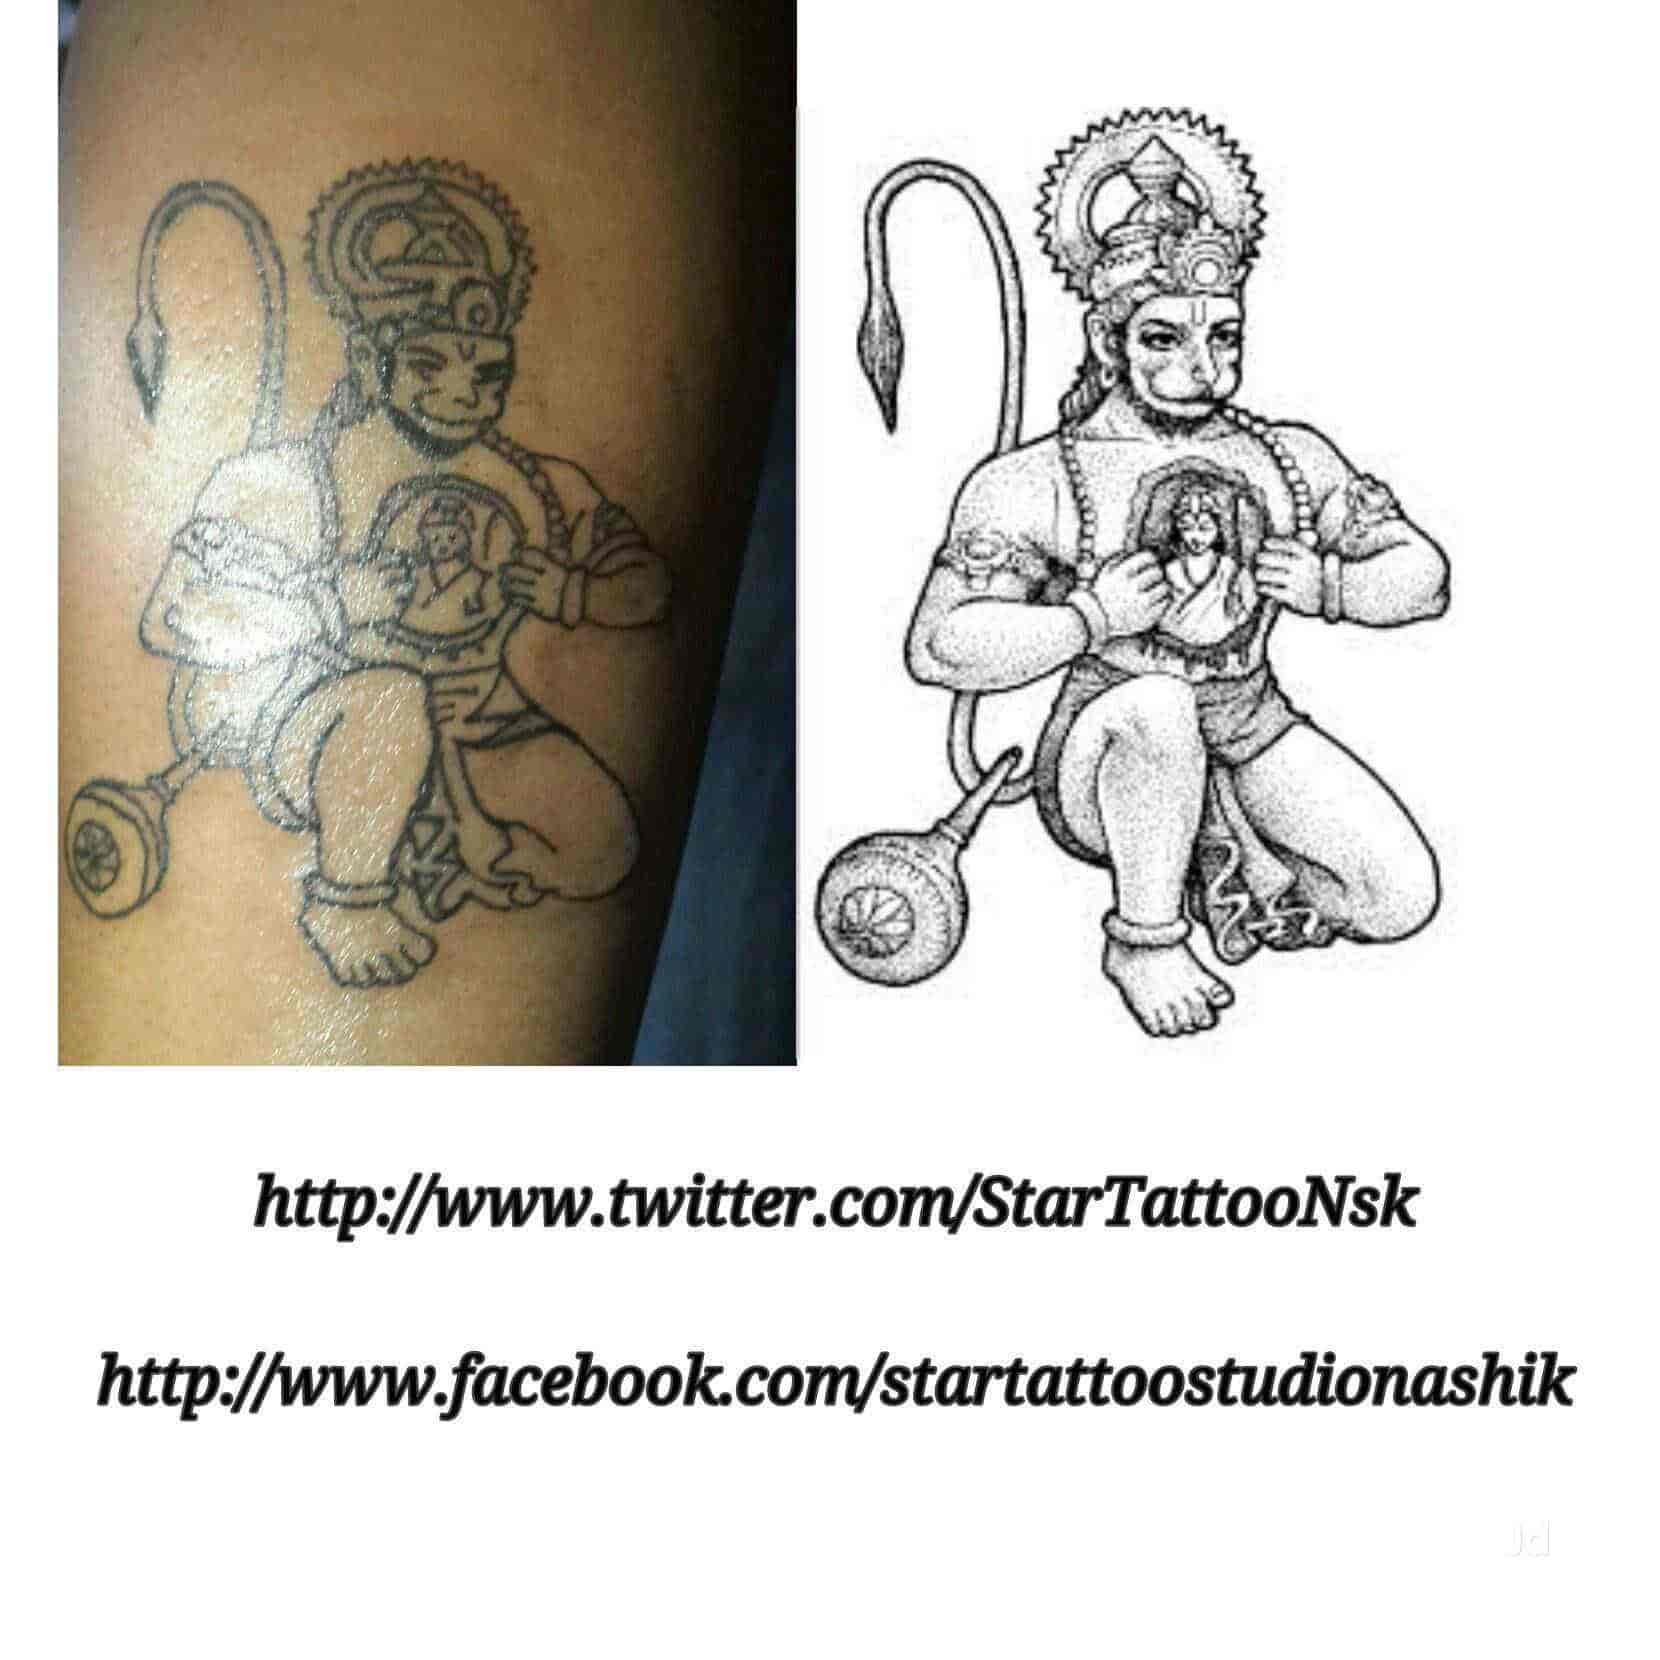 9260239e7bae2 ... Tattoo Design - Star Tattoos Studio Photos, Panchavati, Nashik -  Permanent Tattoo Artists ...